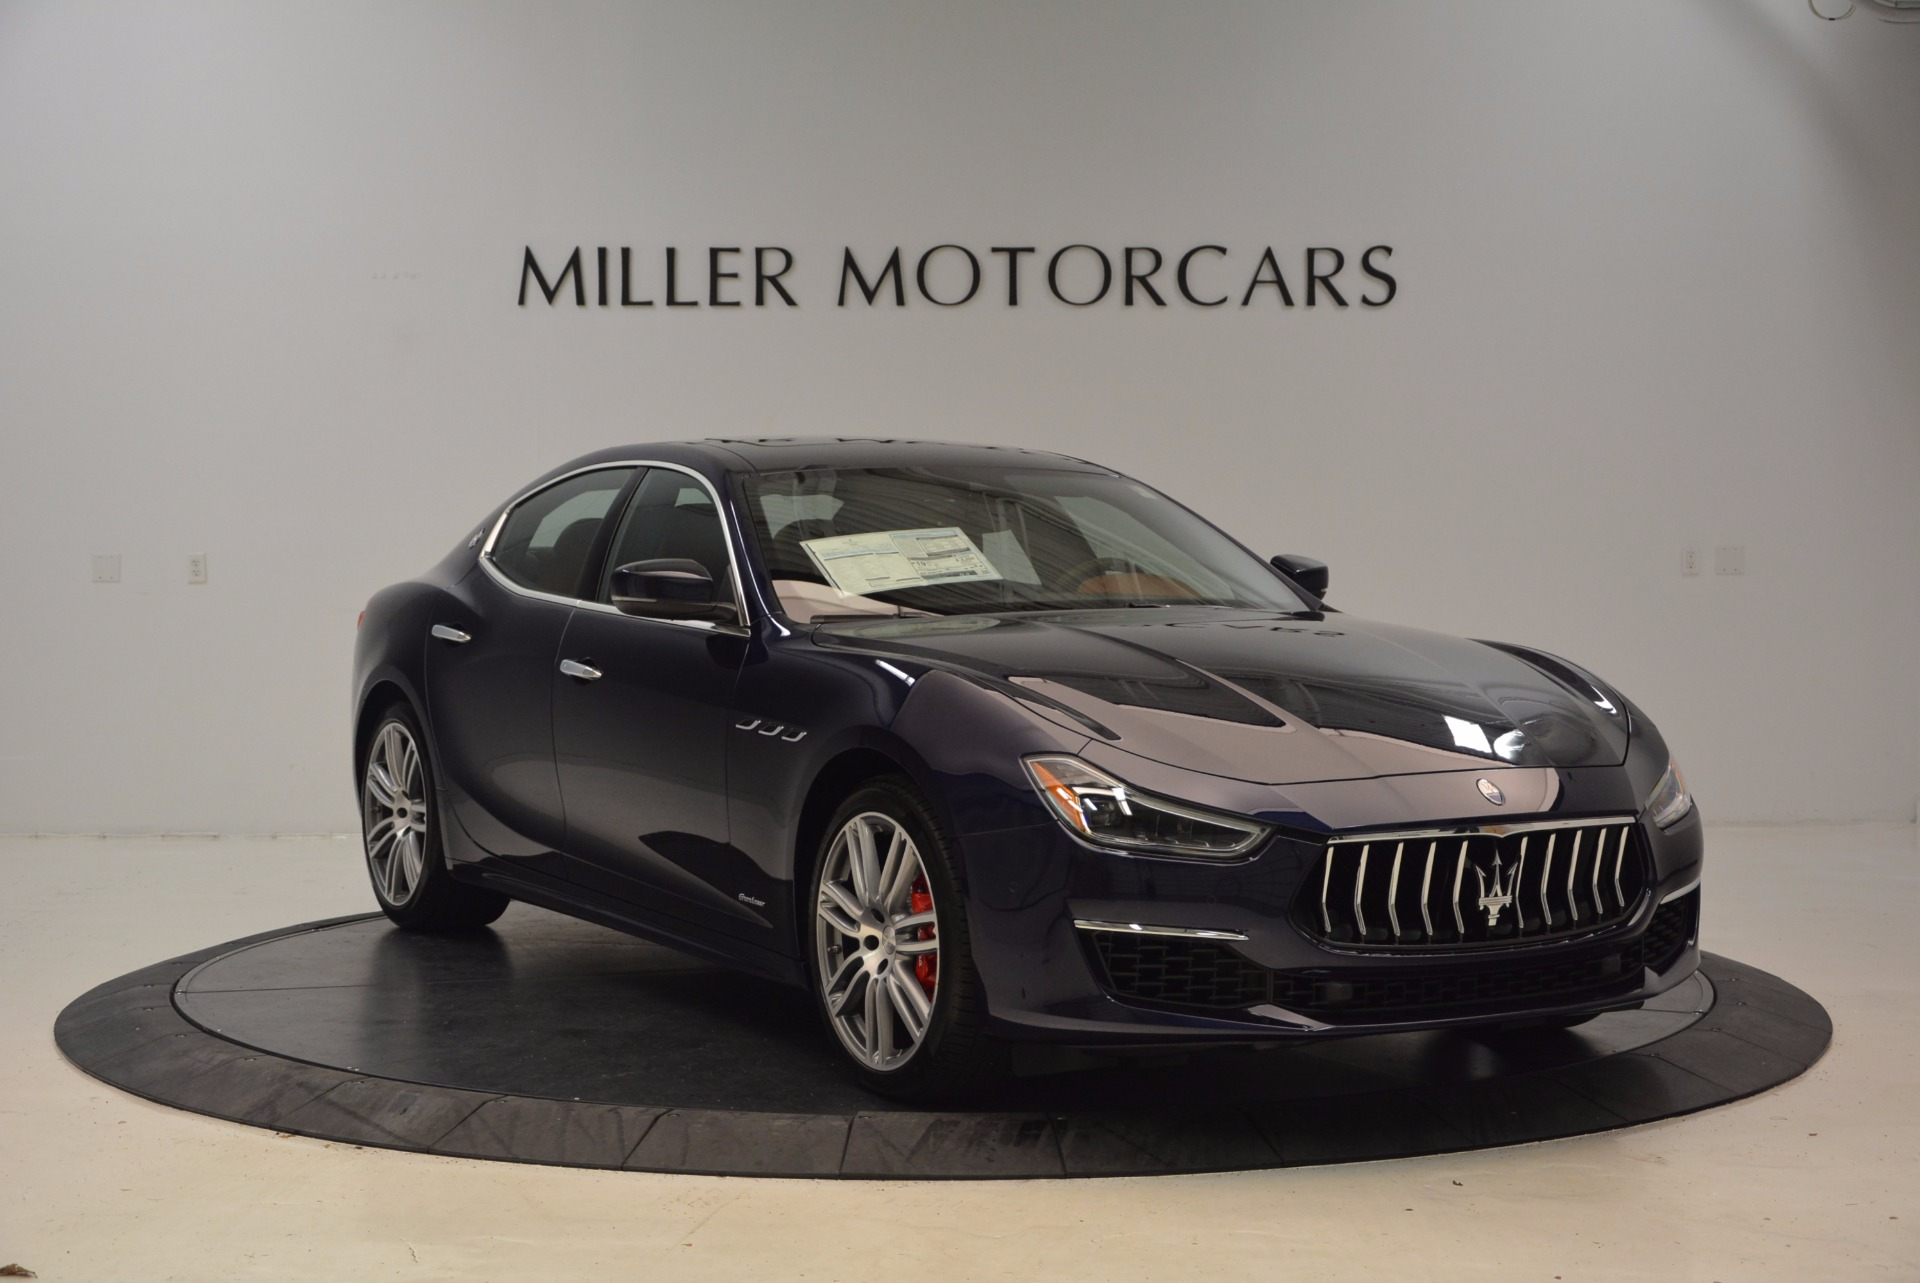 New 2018 Maserati Ghibli S Q4 GranLusso For Sale In Greenwich, CT 1866_p11